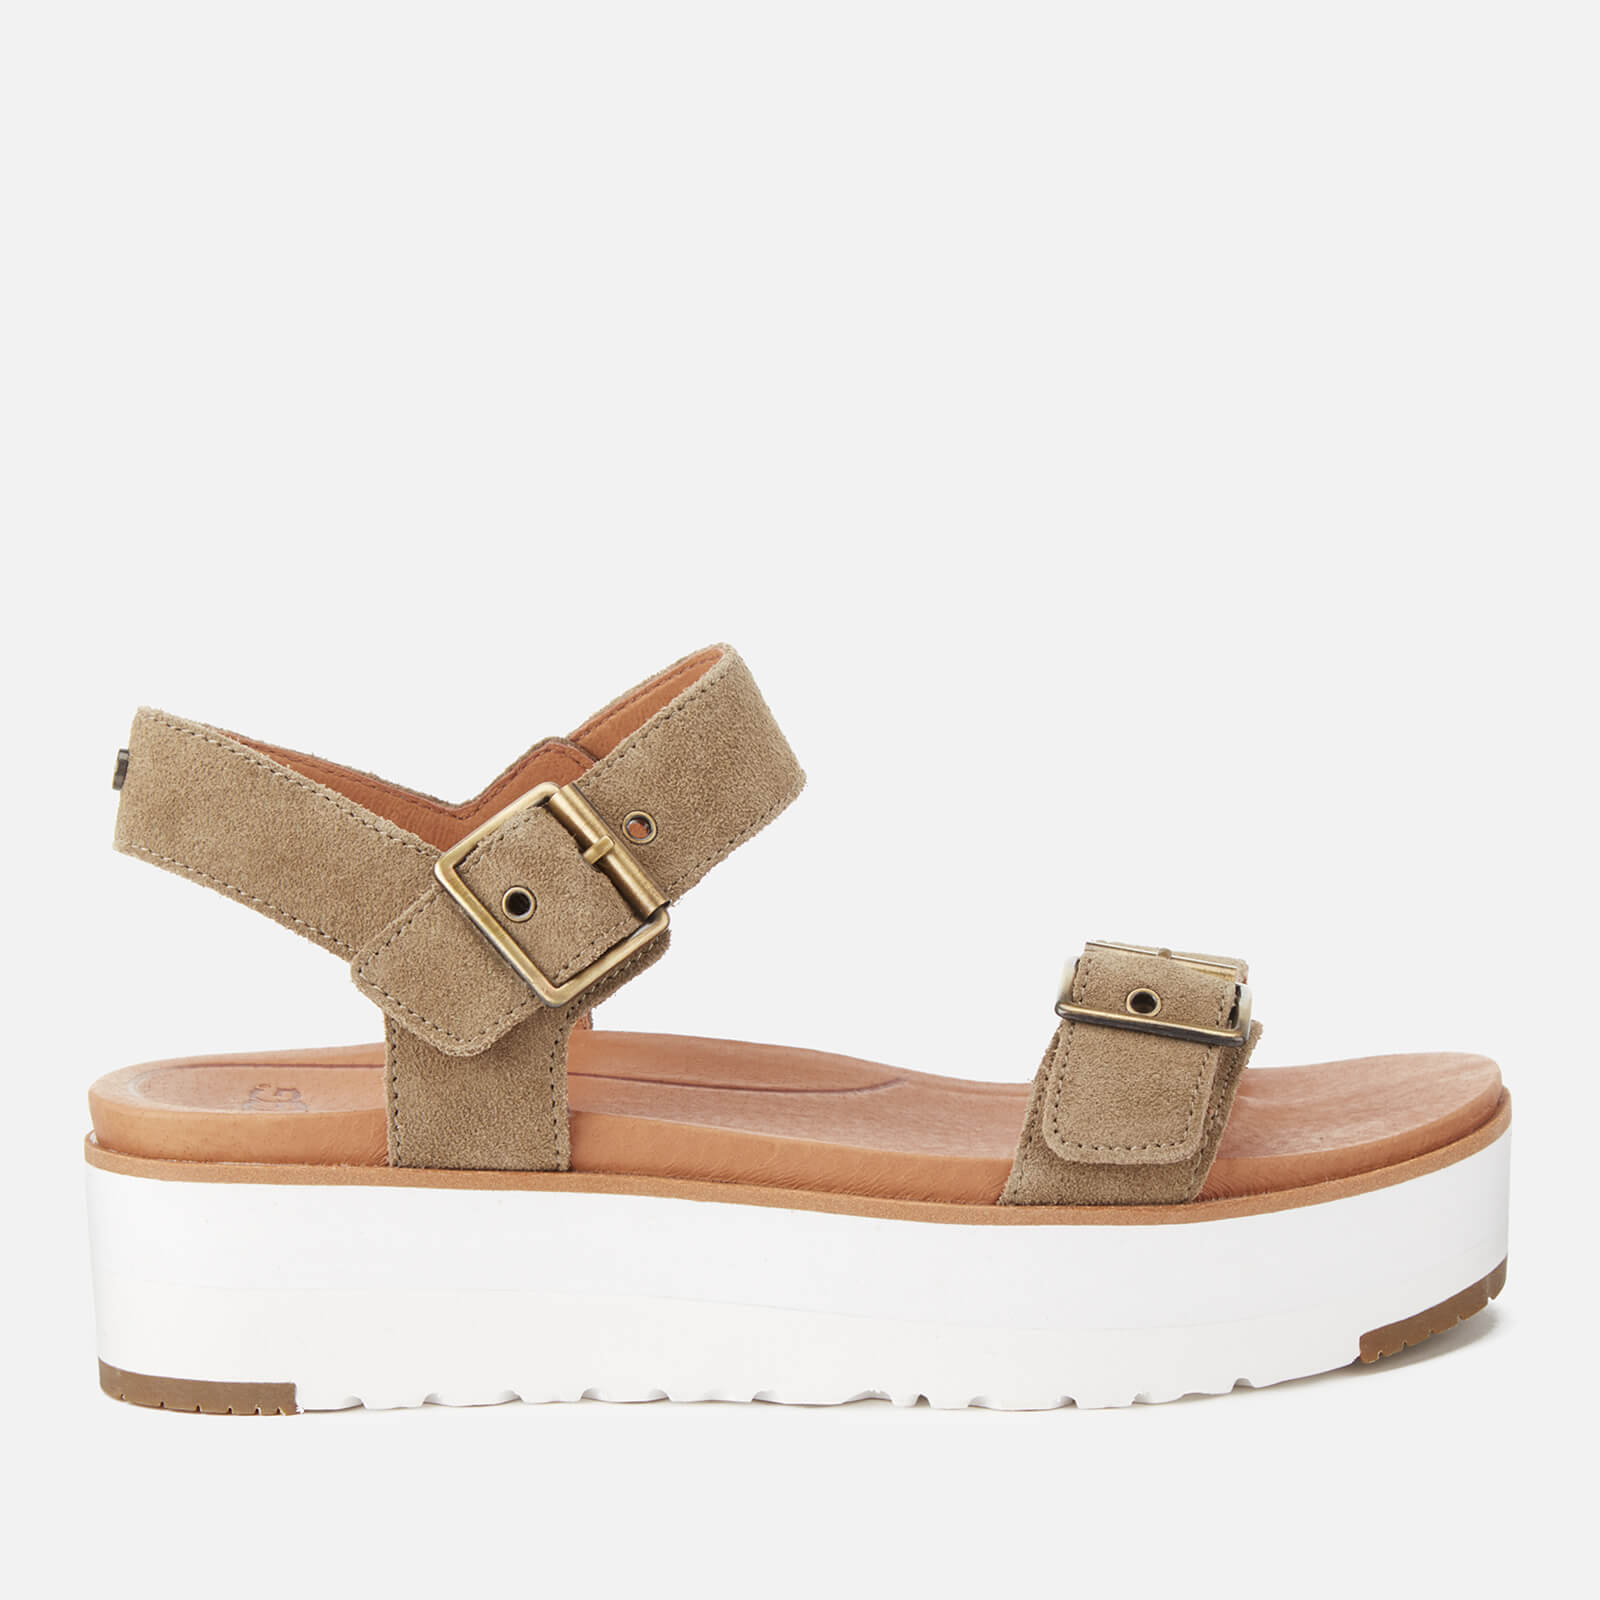 fa115e74414 UGG Women's Angie Double Strap Flatform Sandals - Antelope